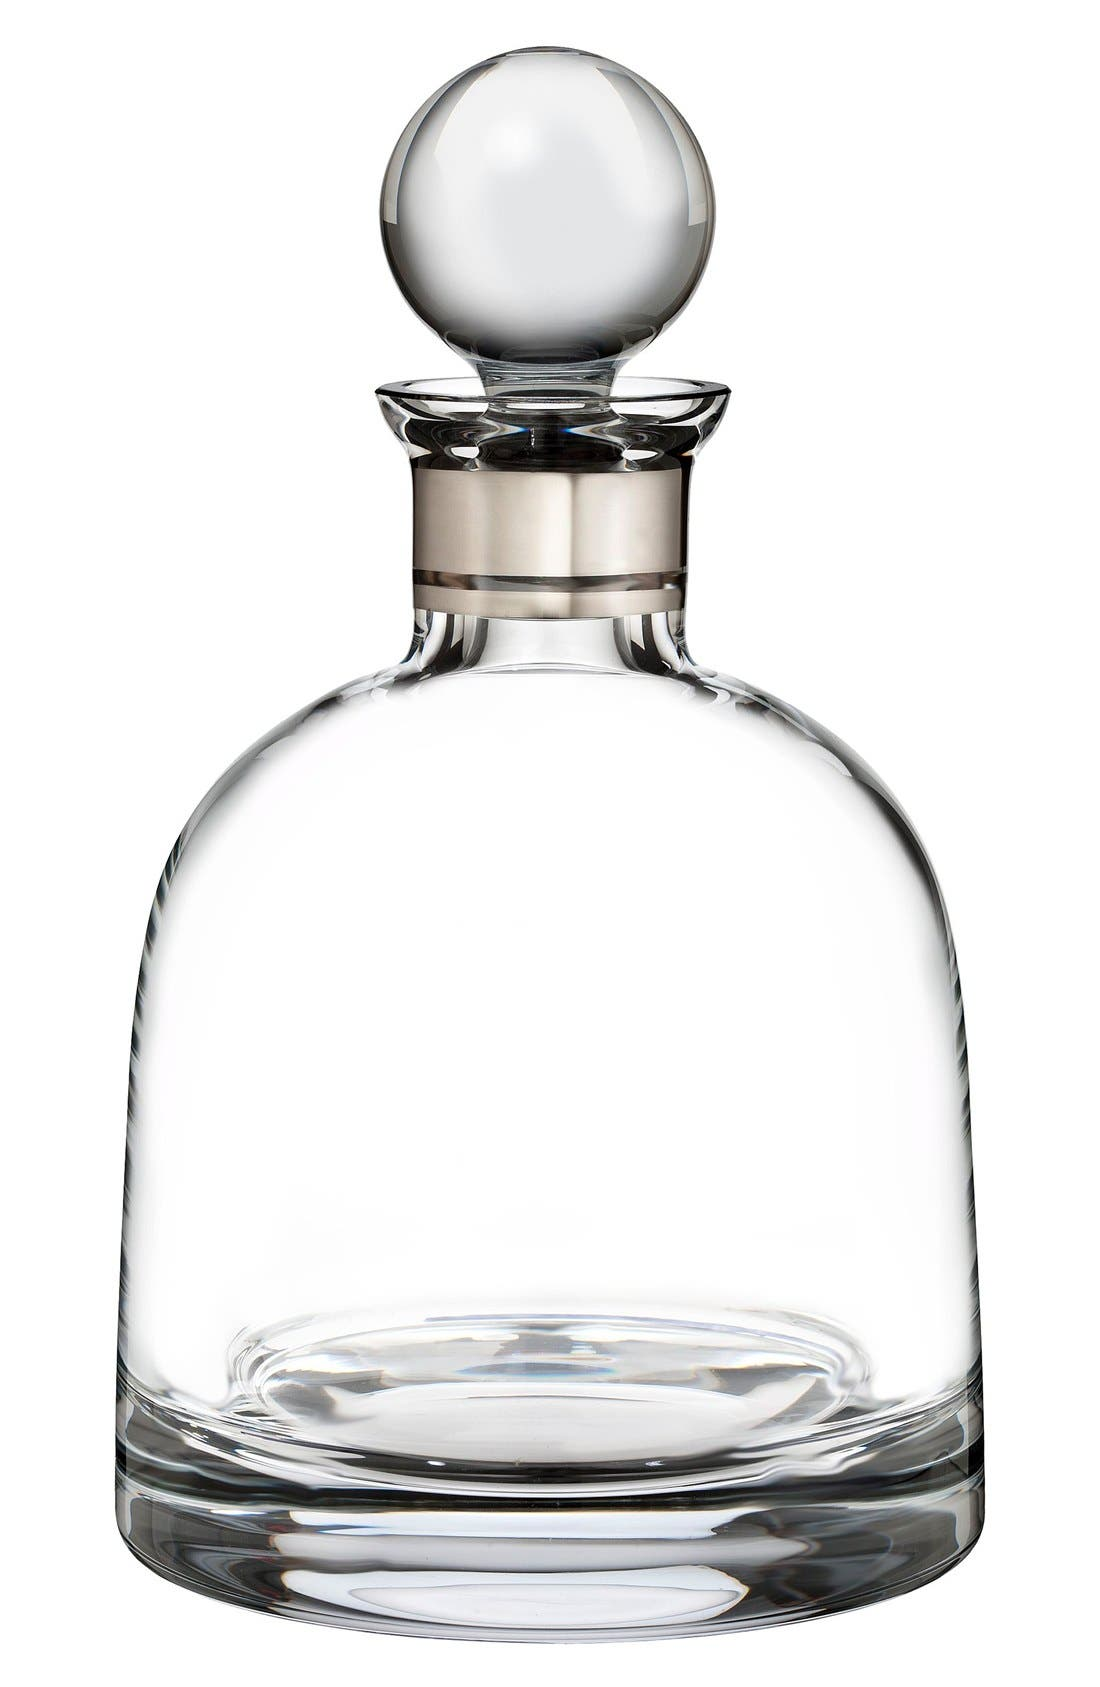 Alternate Image 1 Selected - Waterford 'Elegance' Fine Crystal Decanter & Stopper